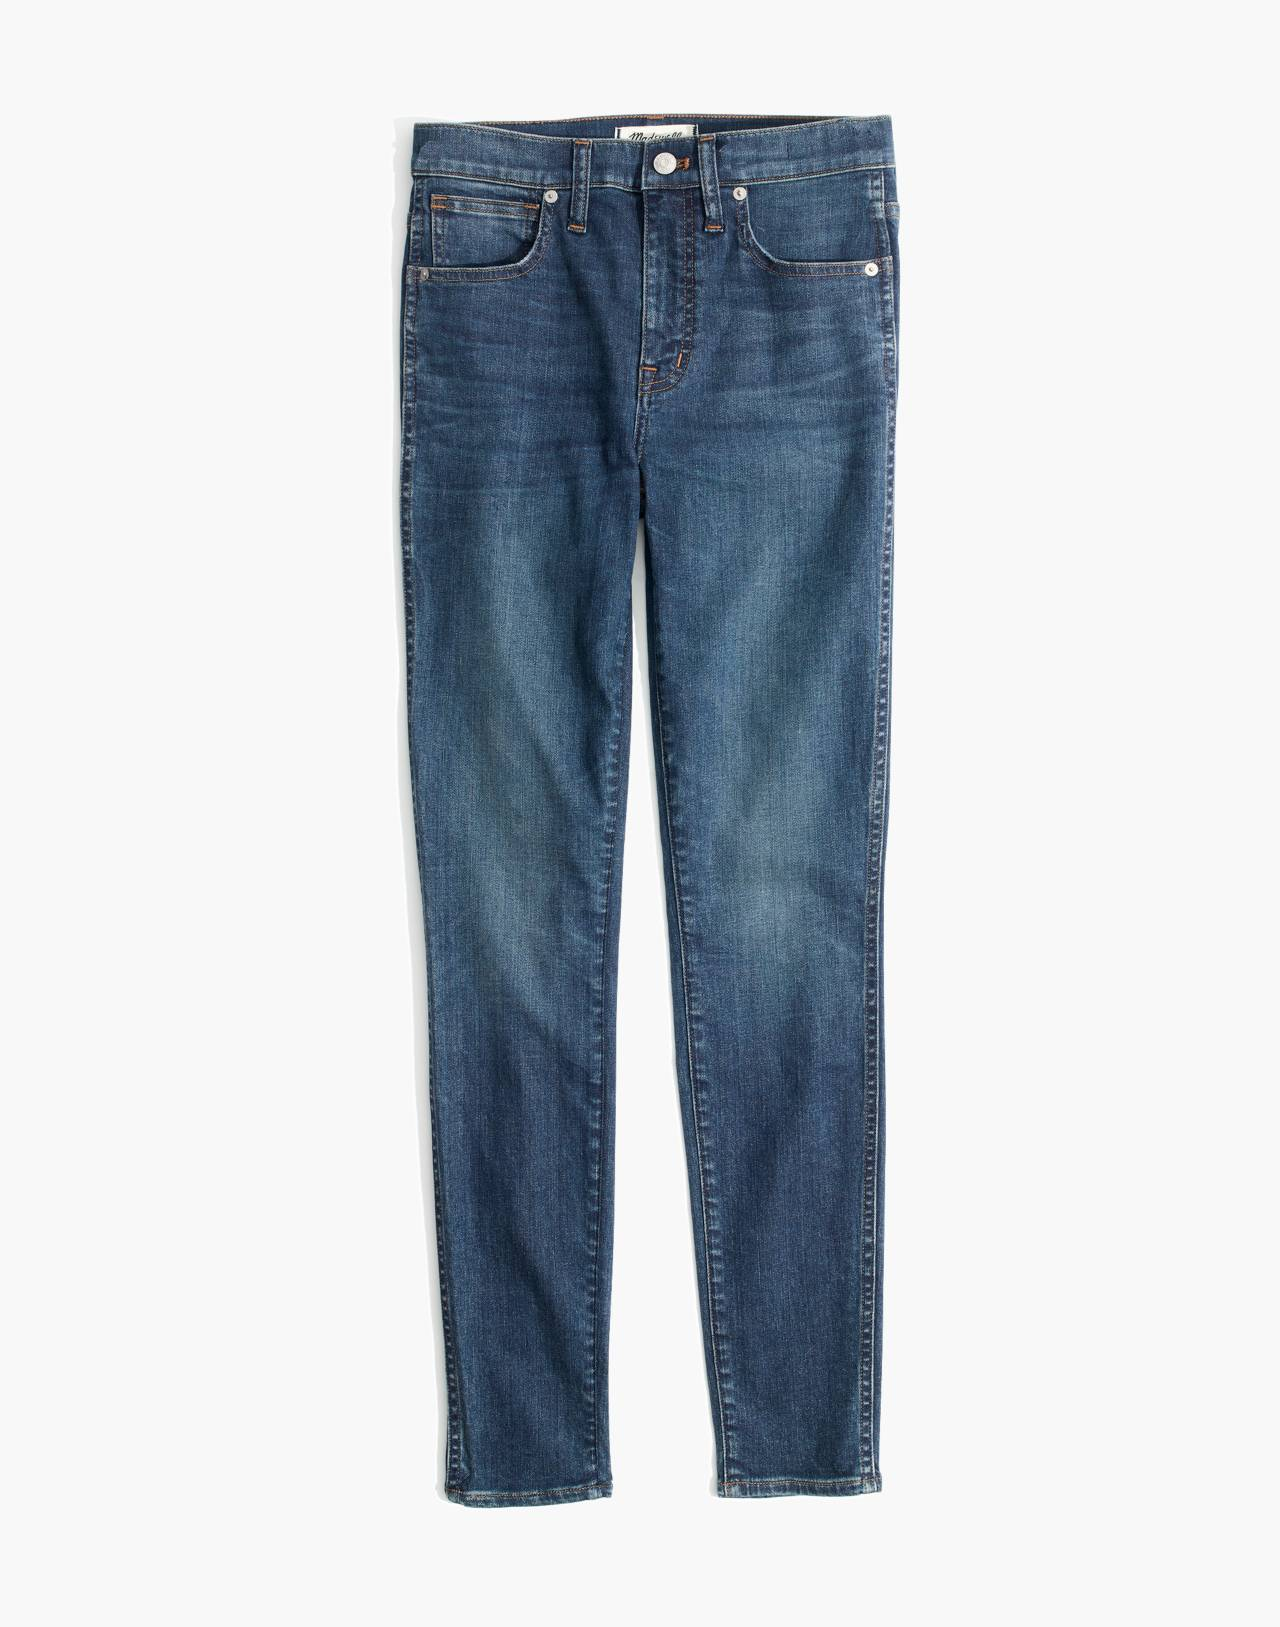 """10"""" High-Rise Skinny Jeans in Elinor Wash: Eco Edition in market image 4"""